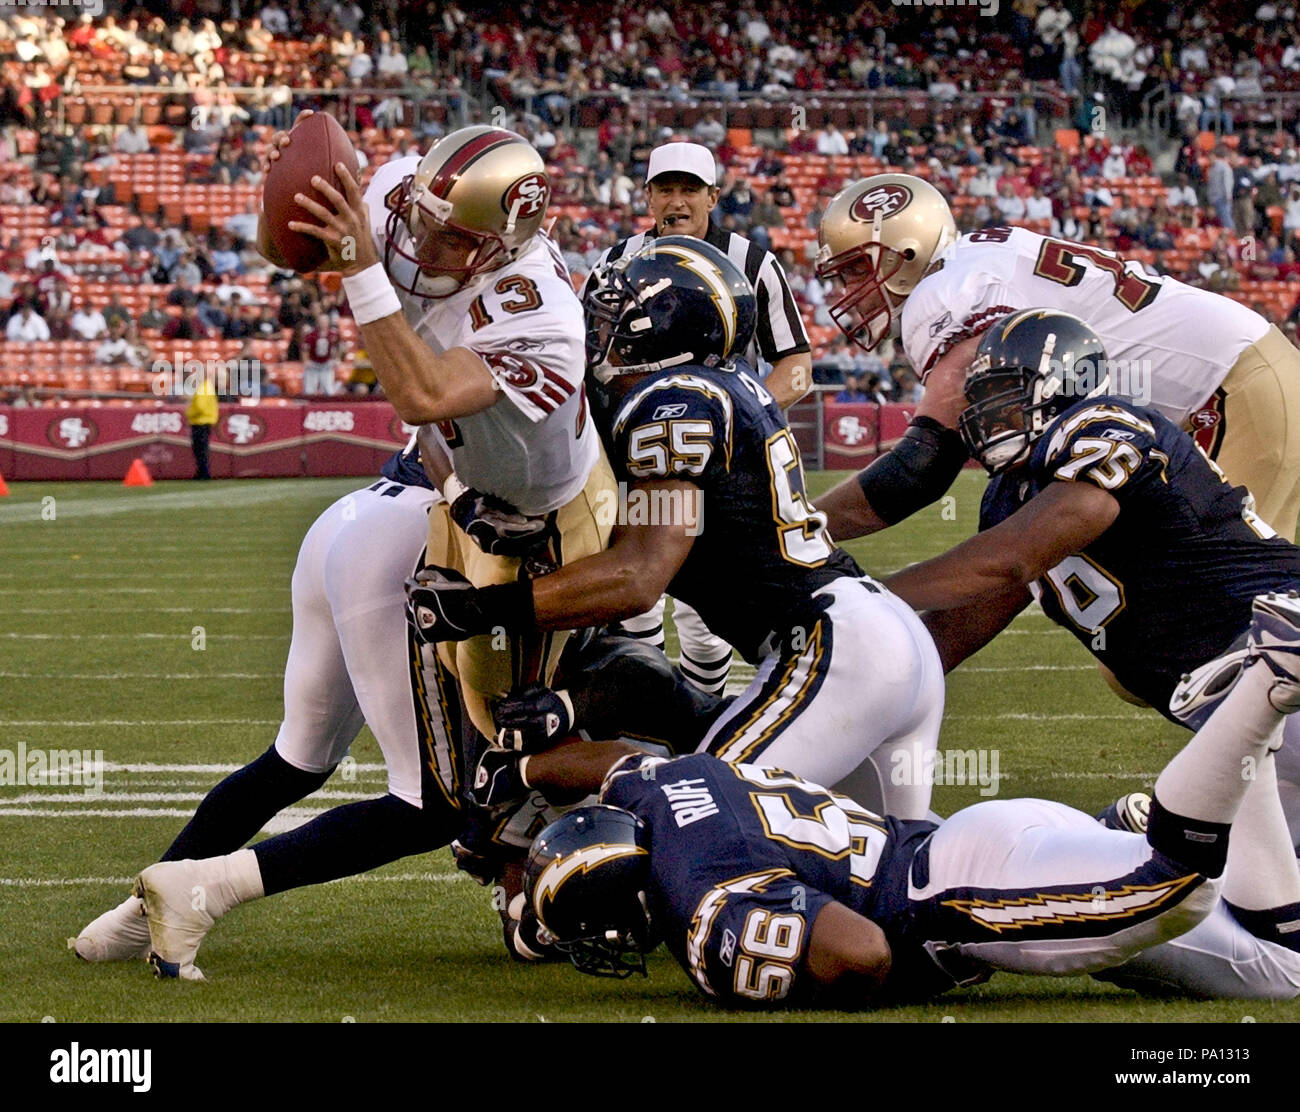 San Diego Chargers Game Live Online Free: Junior Seau Chargers Stock Photos & Junior Seau Chargers